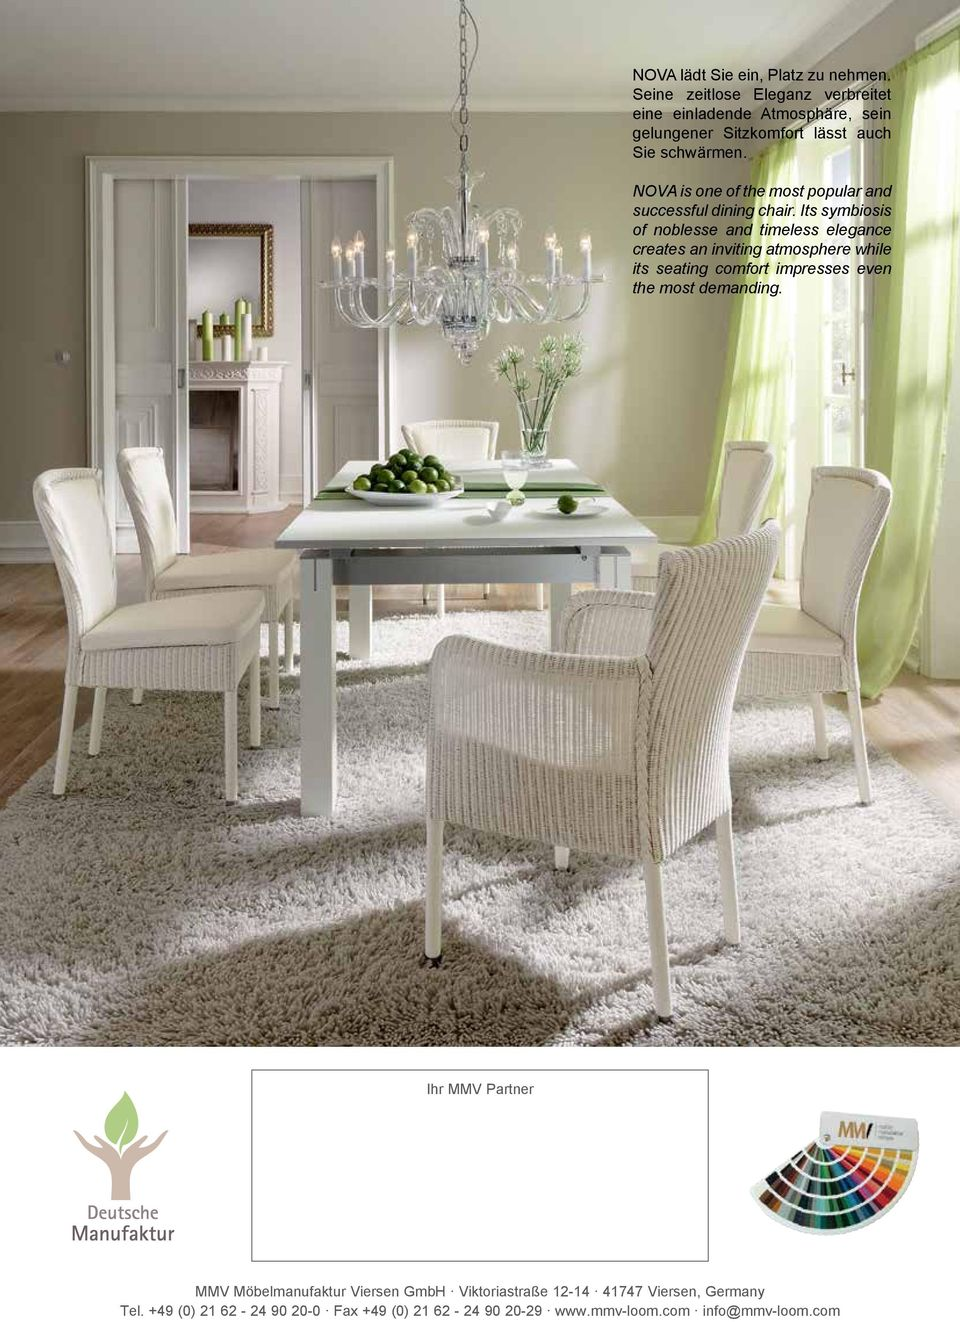 NOVA is one of the most popular and successful dining chair.